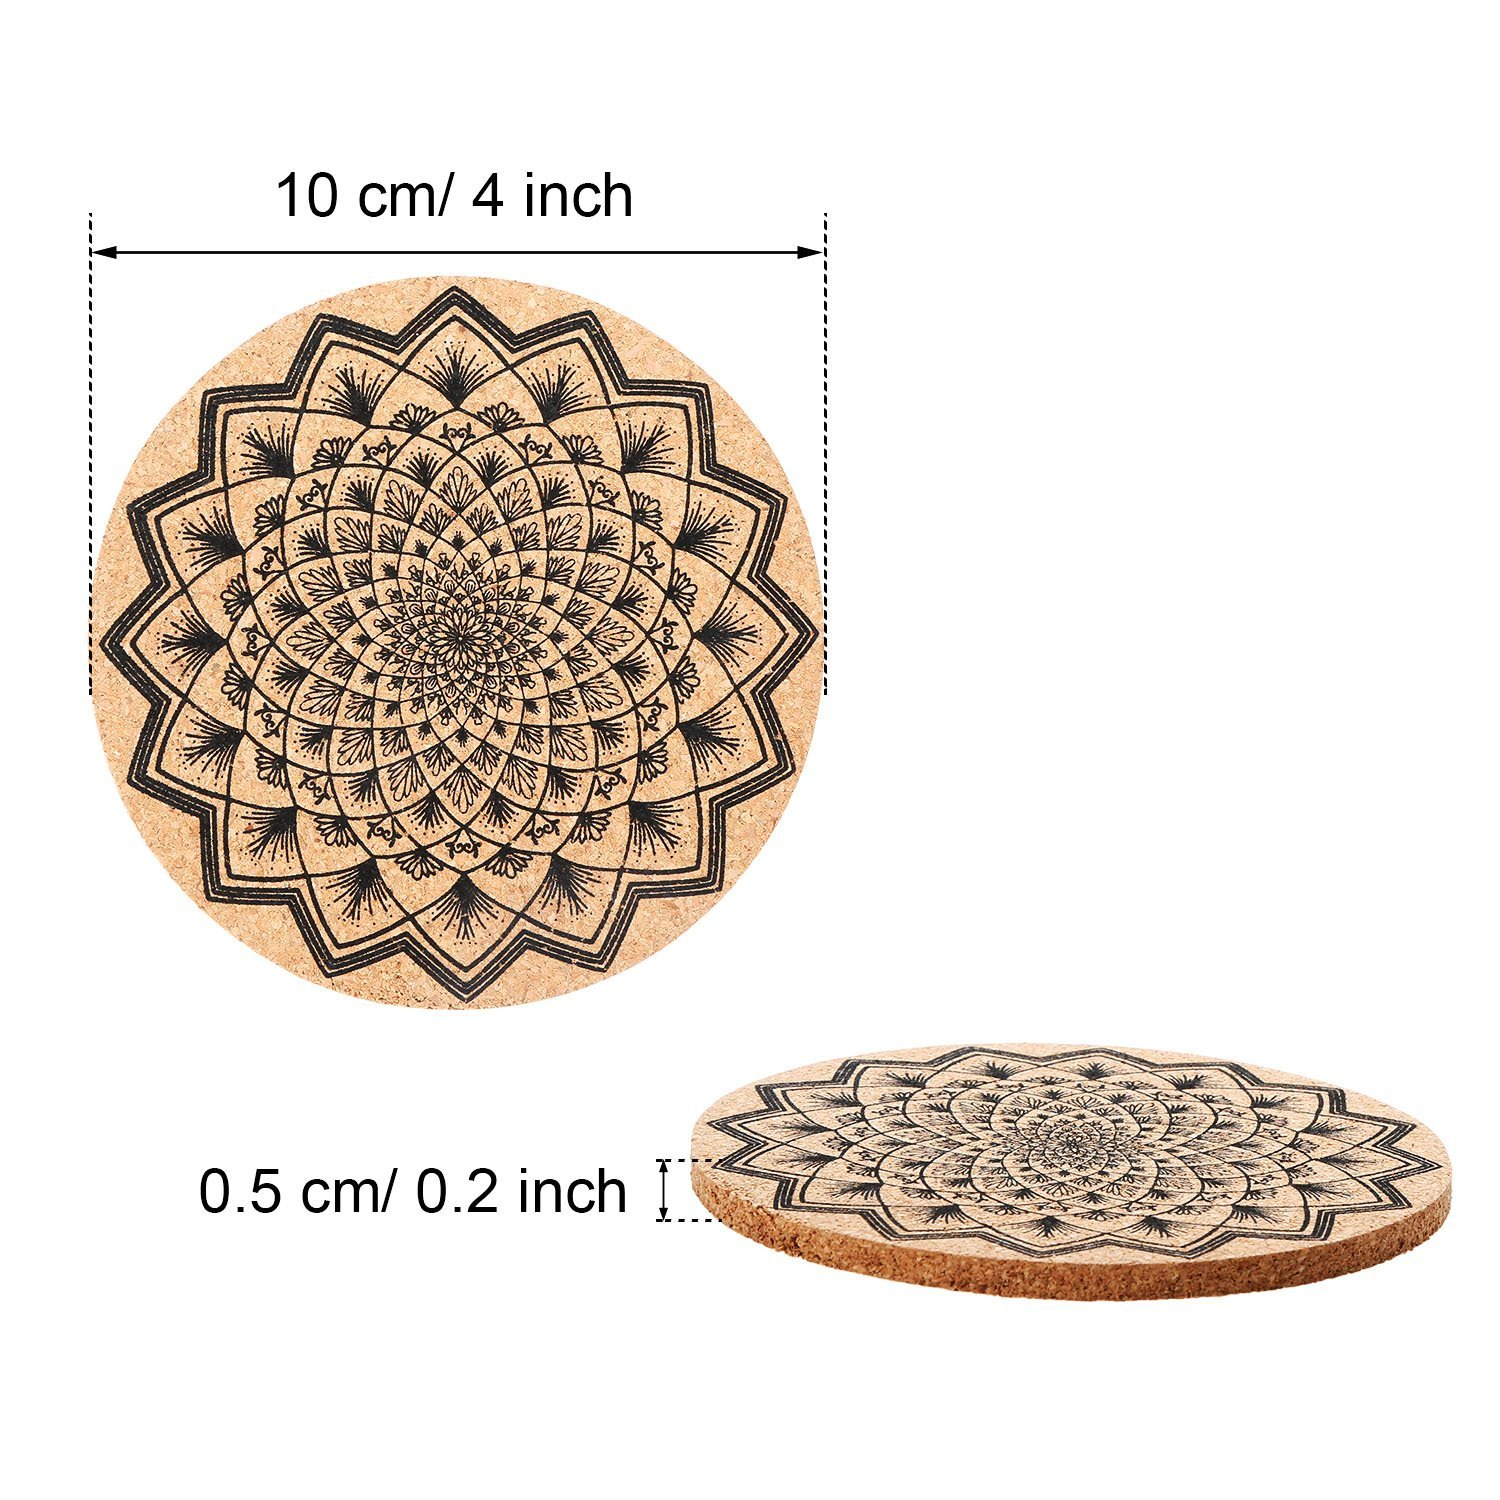 Tatuo 12 Pieces Cork Coasters for Drinks Absorbent Reusable Cup Mat Drink Coaster for Home Restaurant Office and Bar, 4 Inches by Tatuo (Image #2)